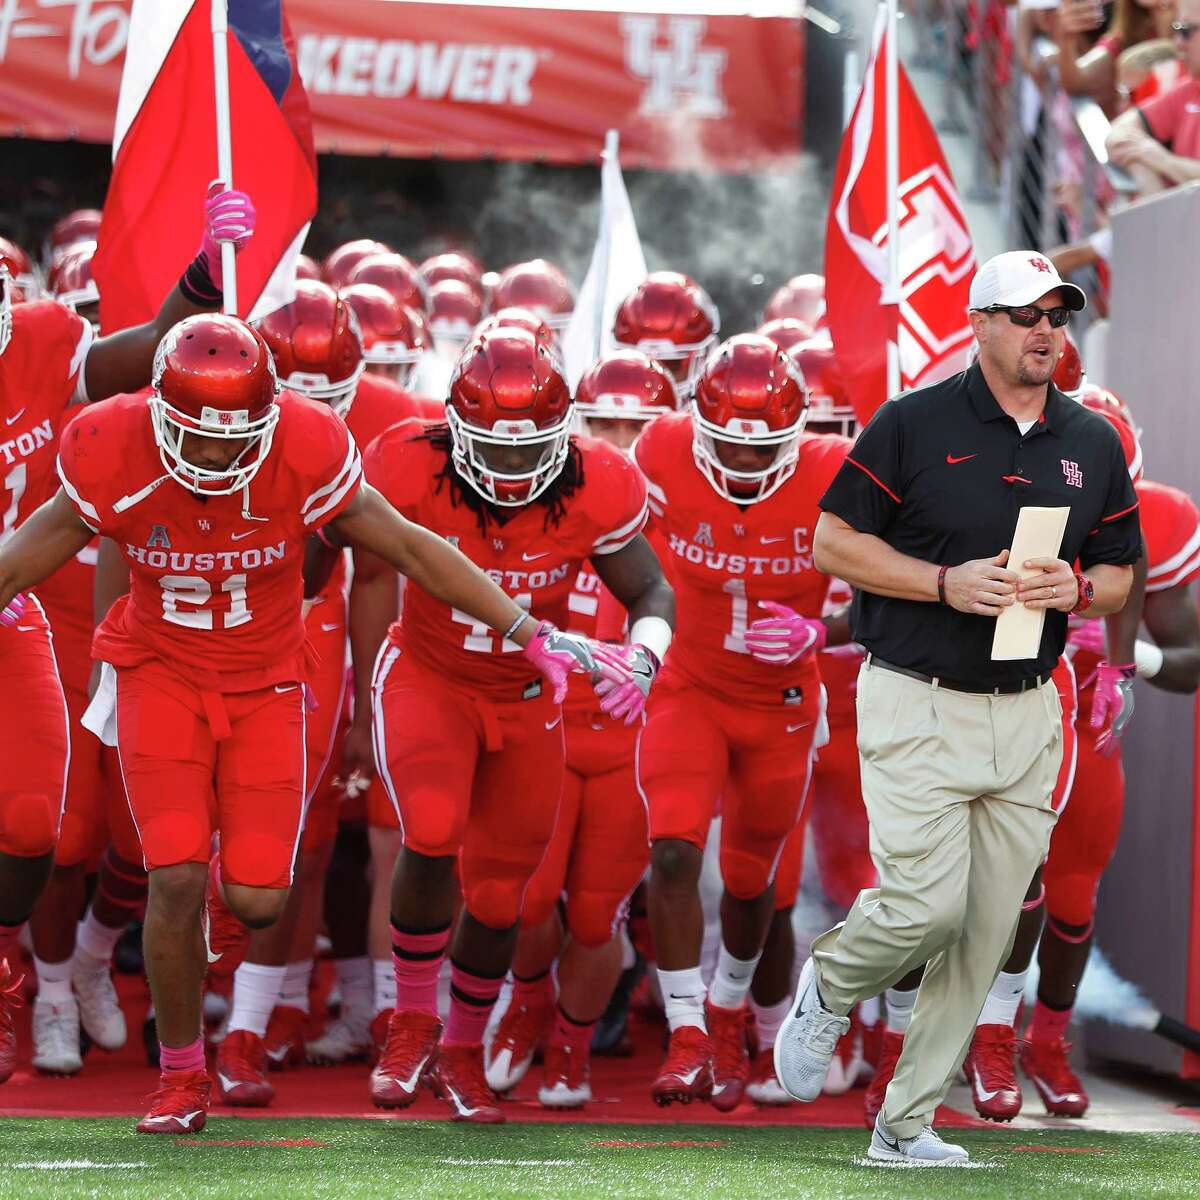 Houston Cougars head coach Tom Herman runs out on the field with his team before the start of a college football game at TDECU Stadium, Saturday,Oct. 29, 2016 in Houston. ( Karen Warren / Houston Chronicle )